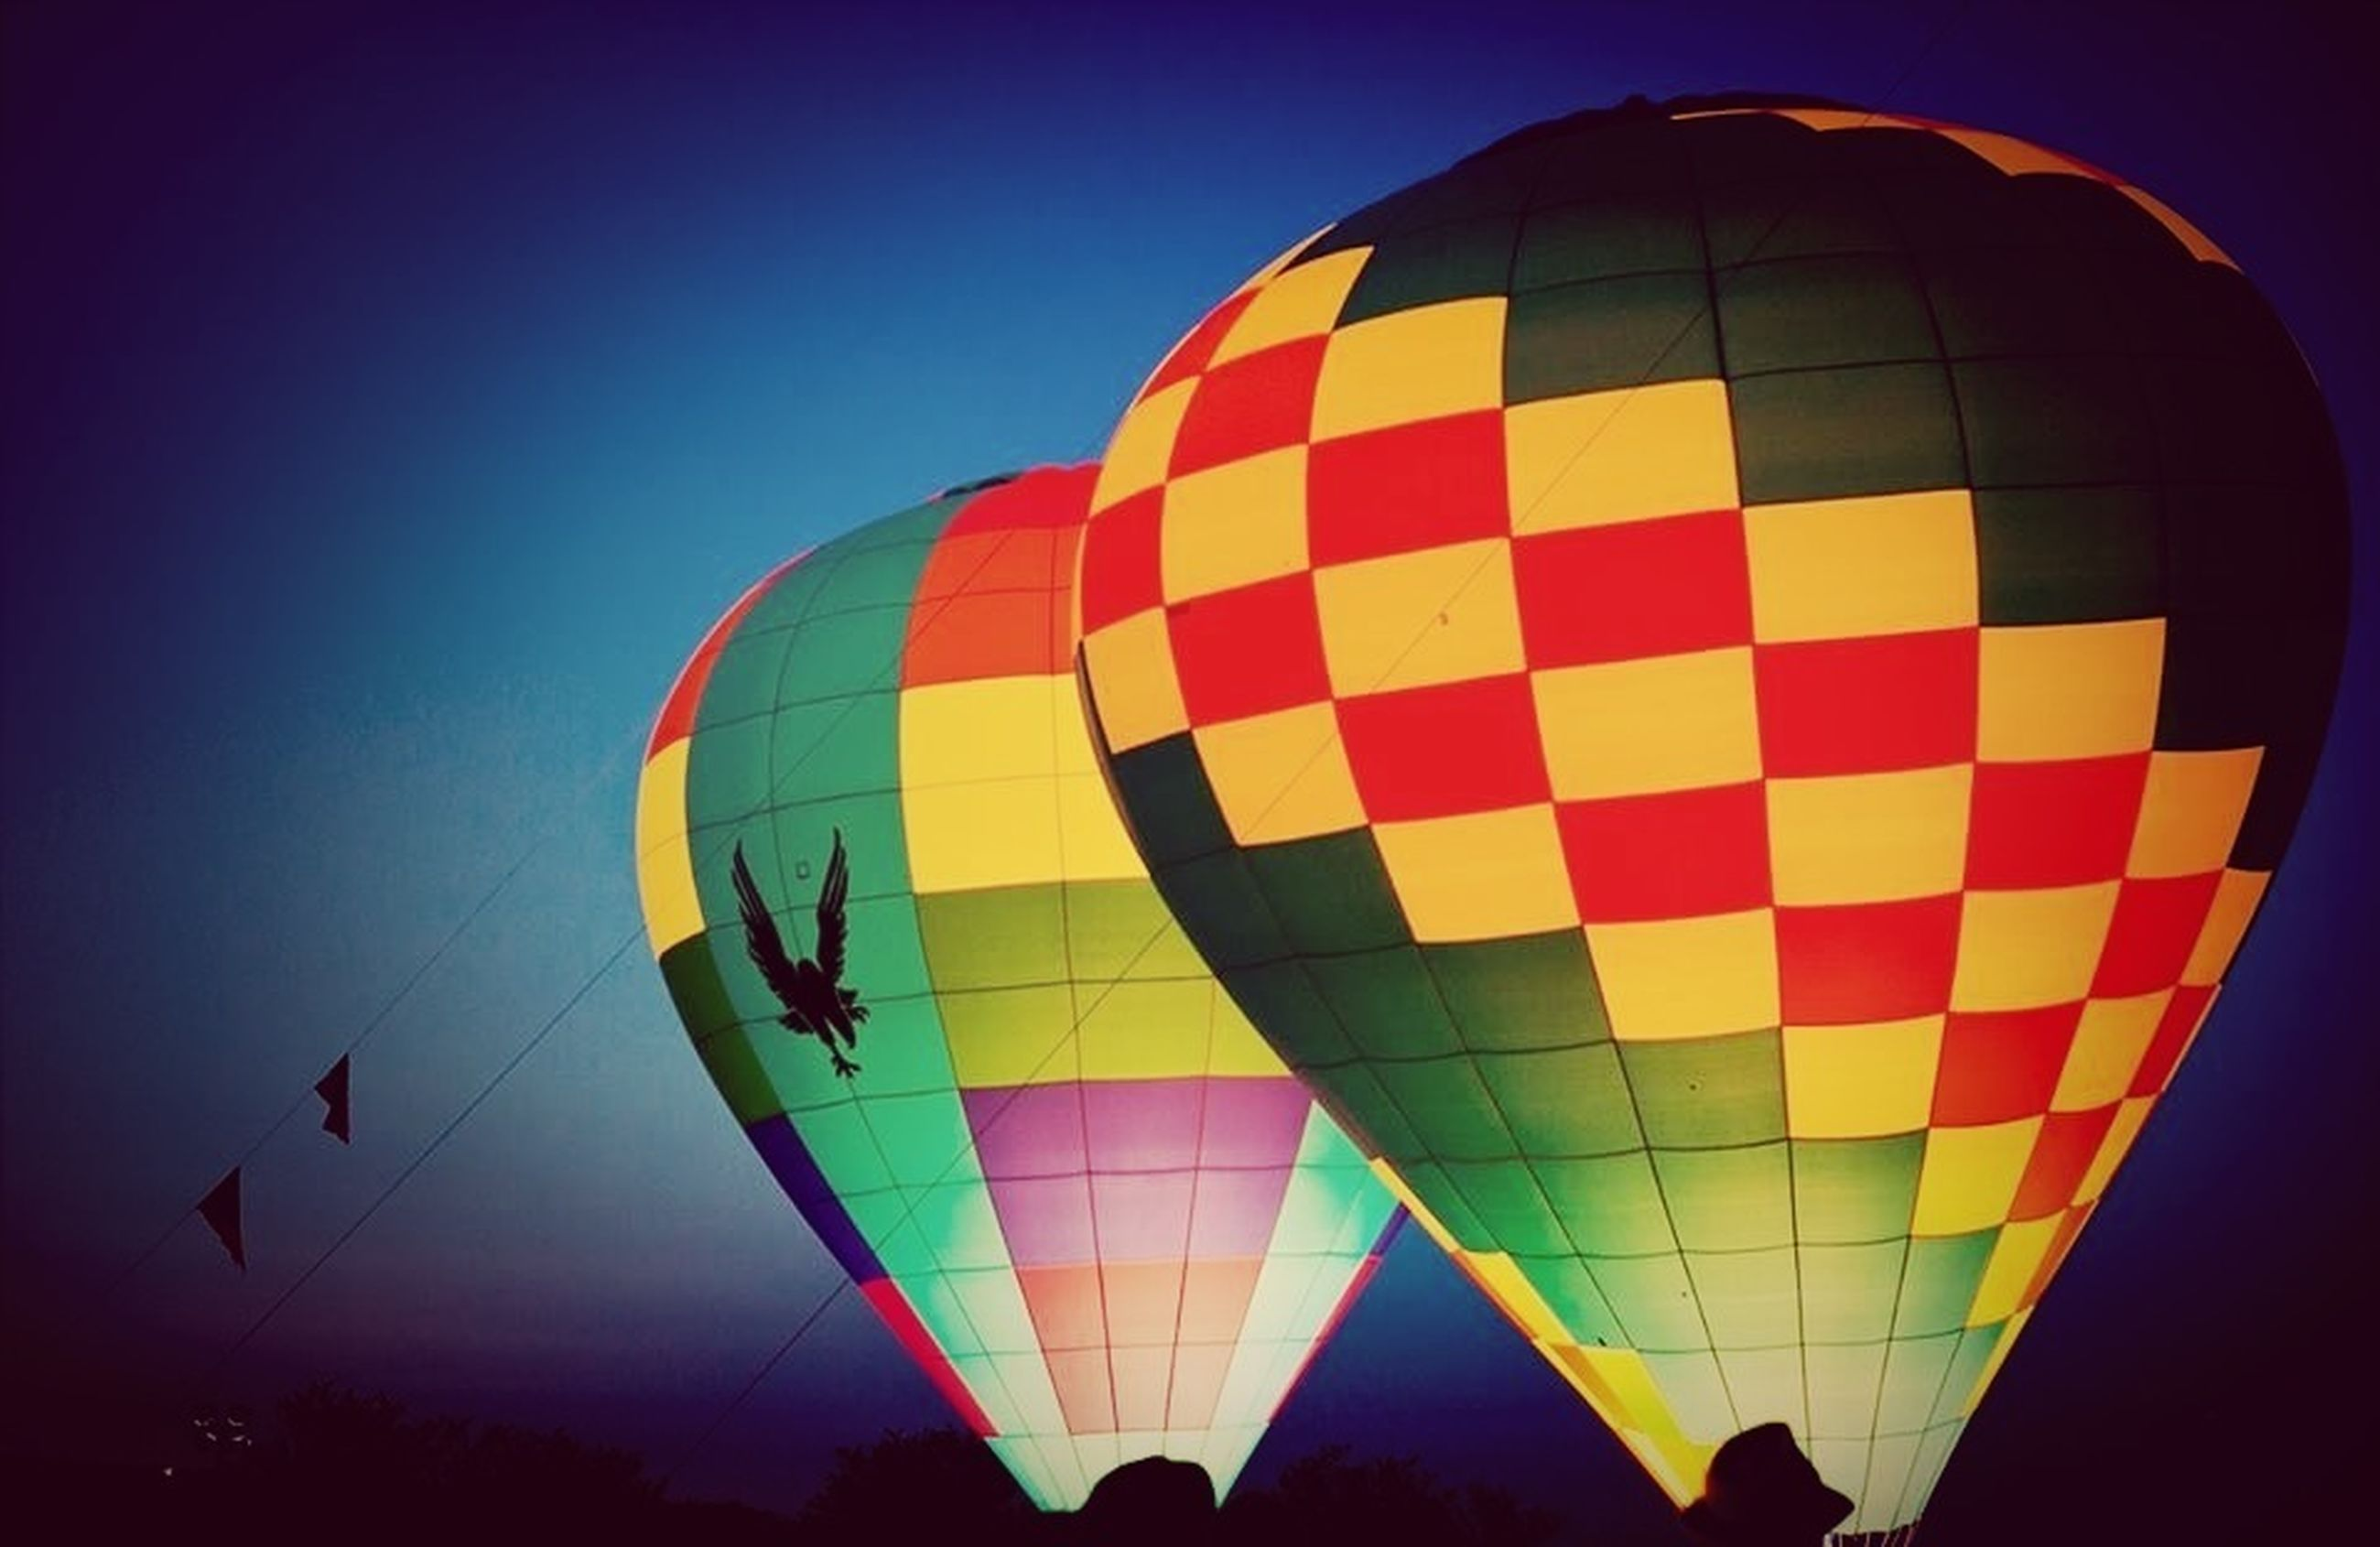 low angle view, multi colored, hot air balloon, mid-air, flying, sky, clear sky, arts culture and entertainment, pattern, fun, colorful, blue, amusement park, balloon, parachute, ferris wheel, outdoors, amusement park ride, copy space, adventure